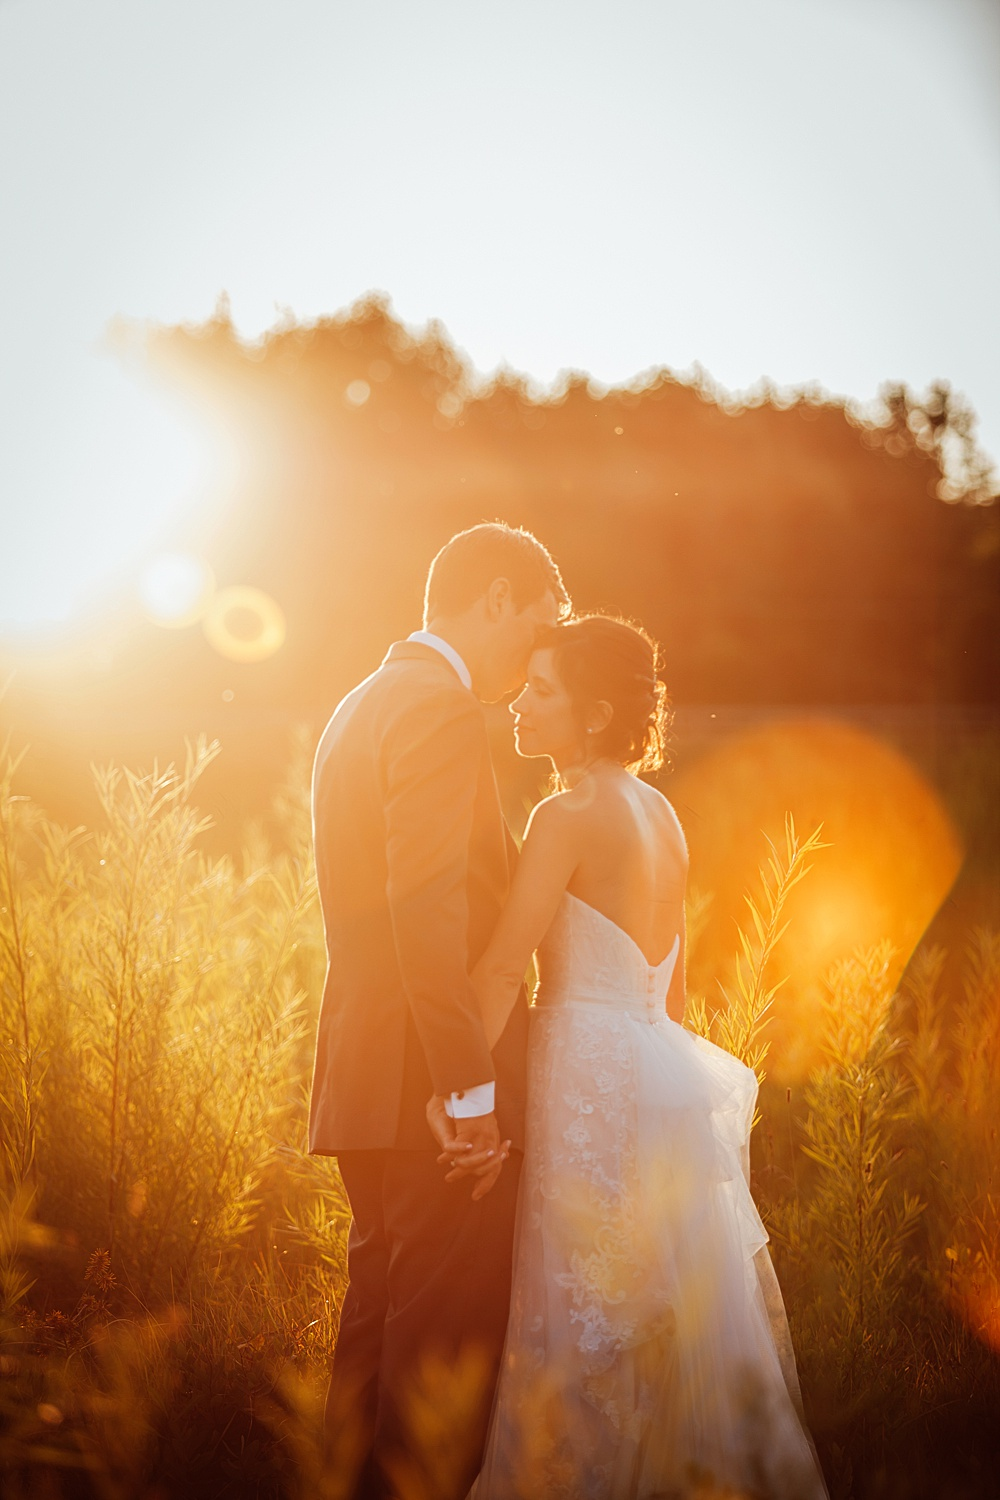 Southwest_Michigan_Wedding_Photographer095.jpg